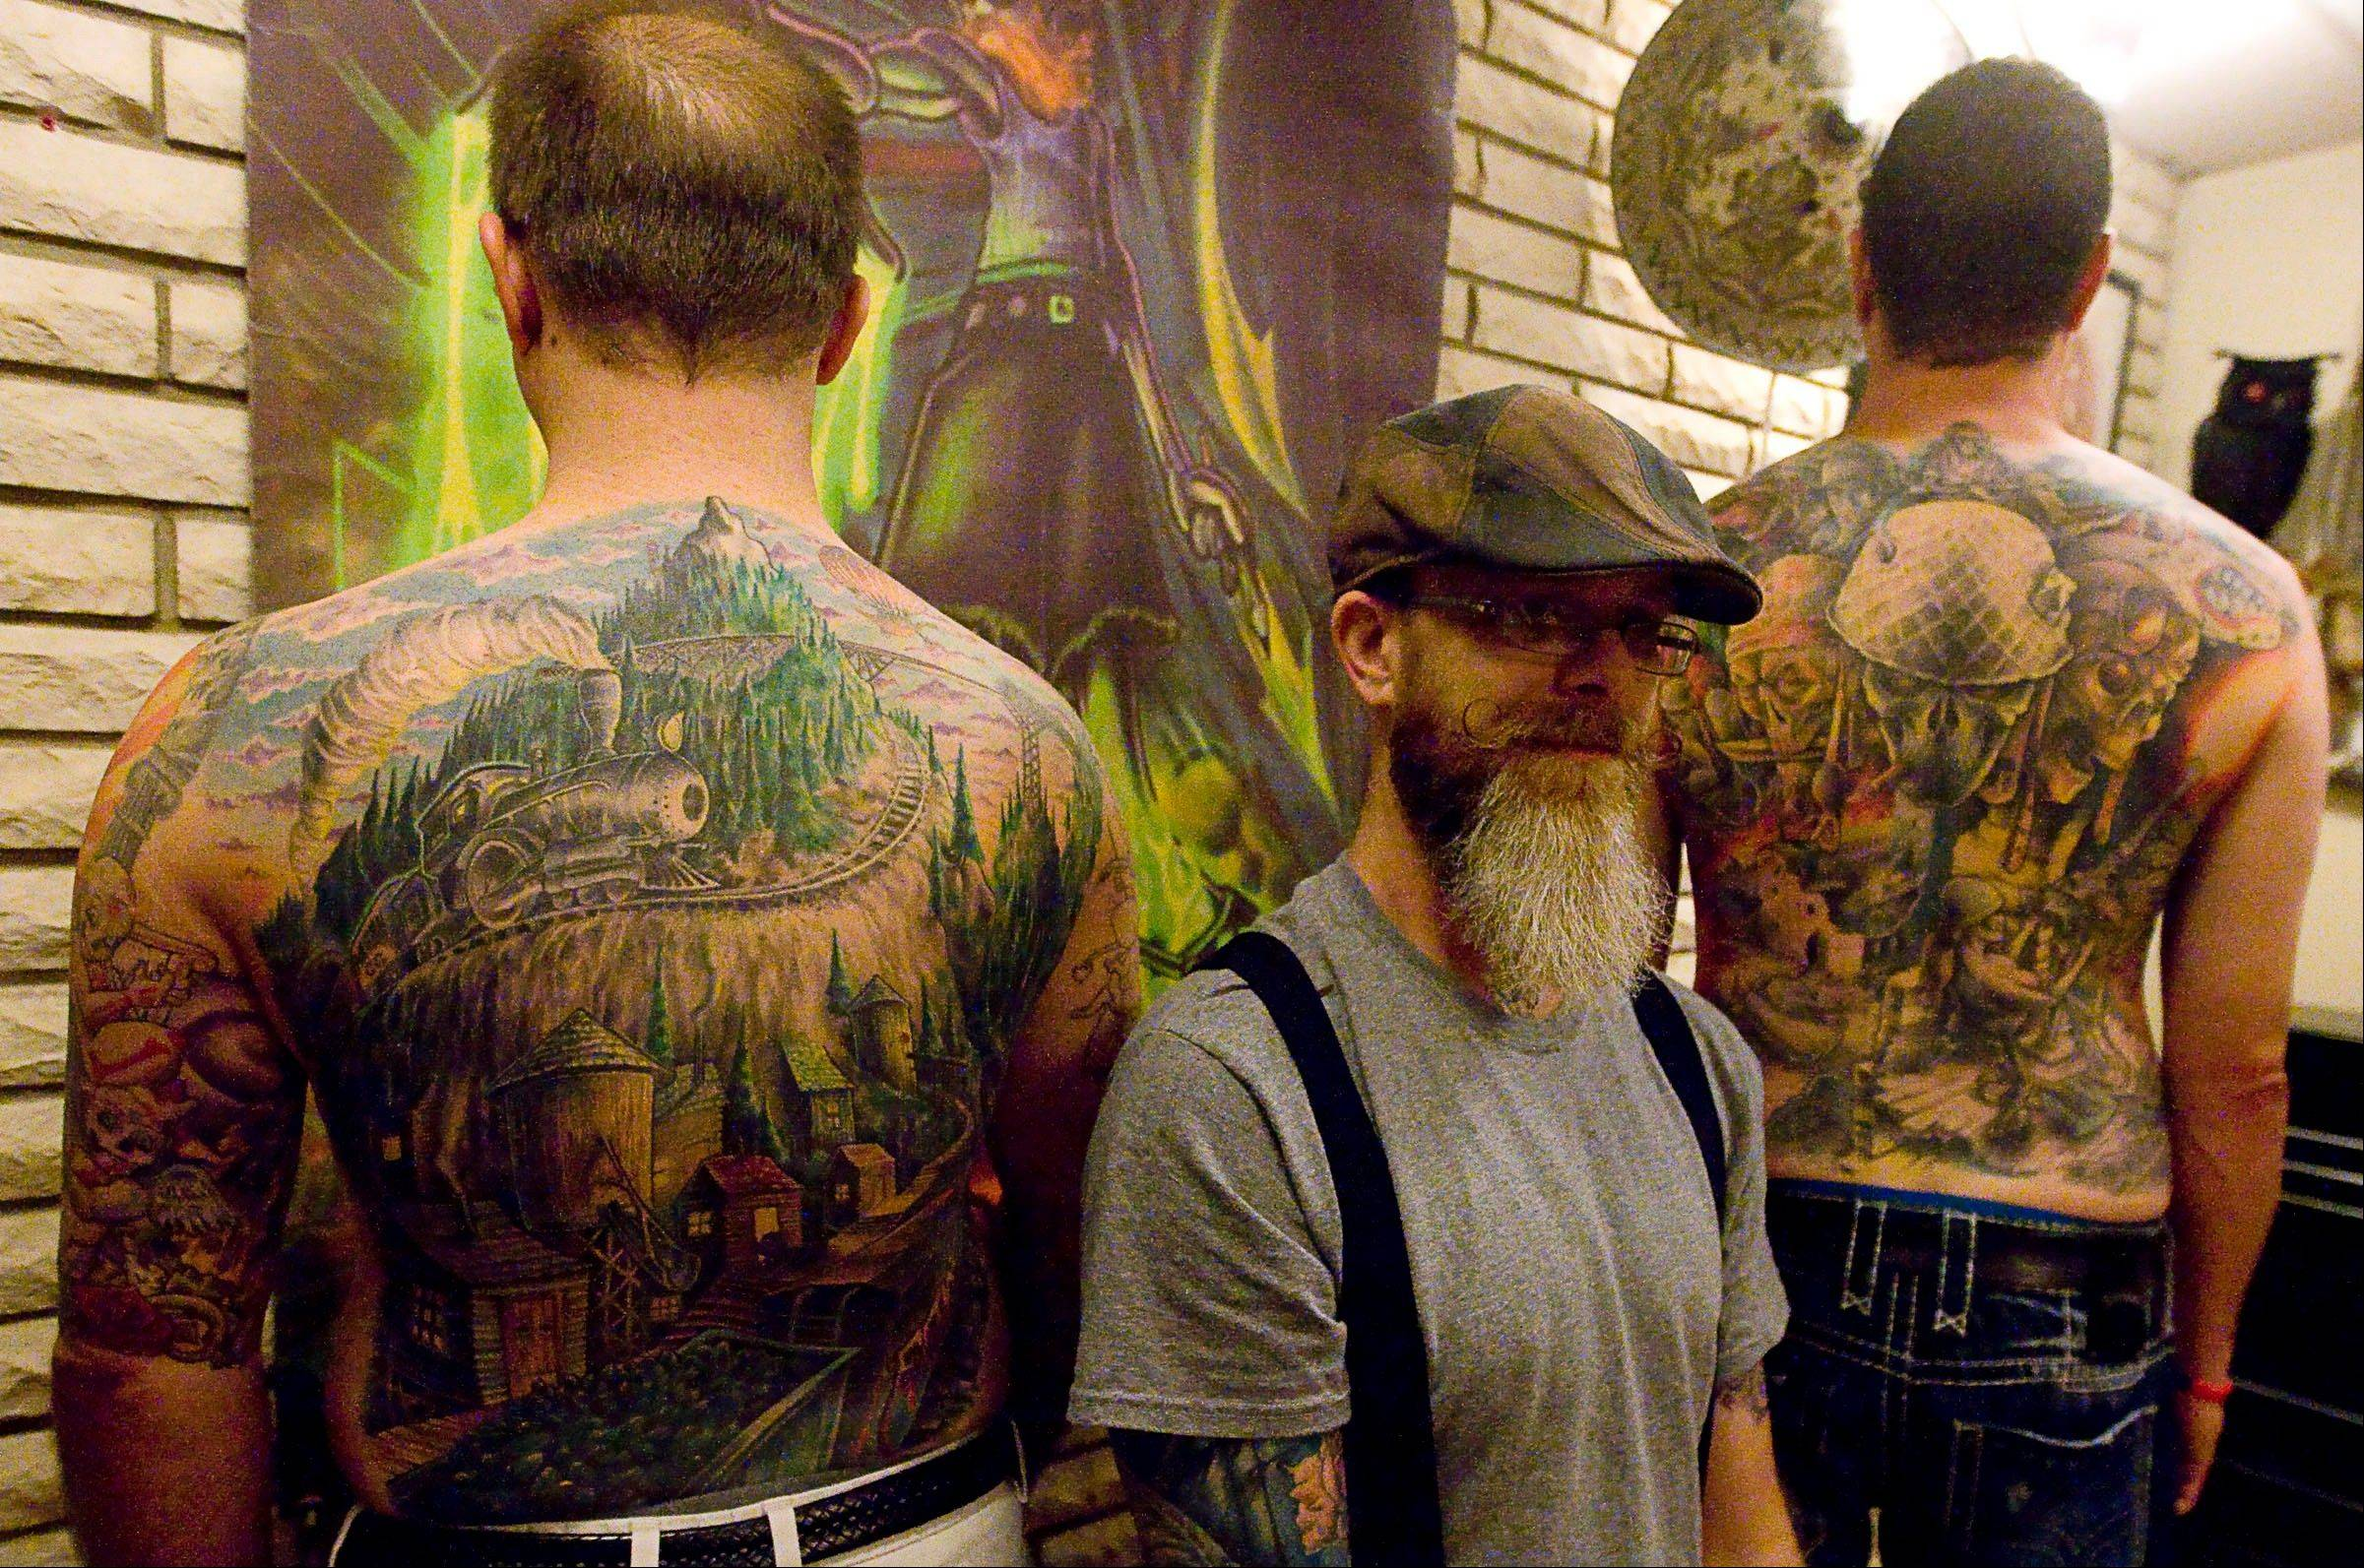 Jason Campbell, center, a Decatur native, sits with two award winning models of his work as a tattoo artist in his Springfield.